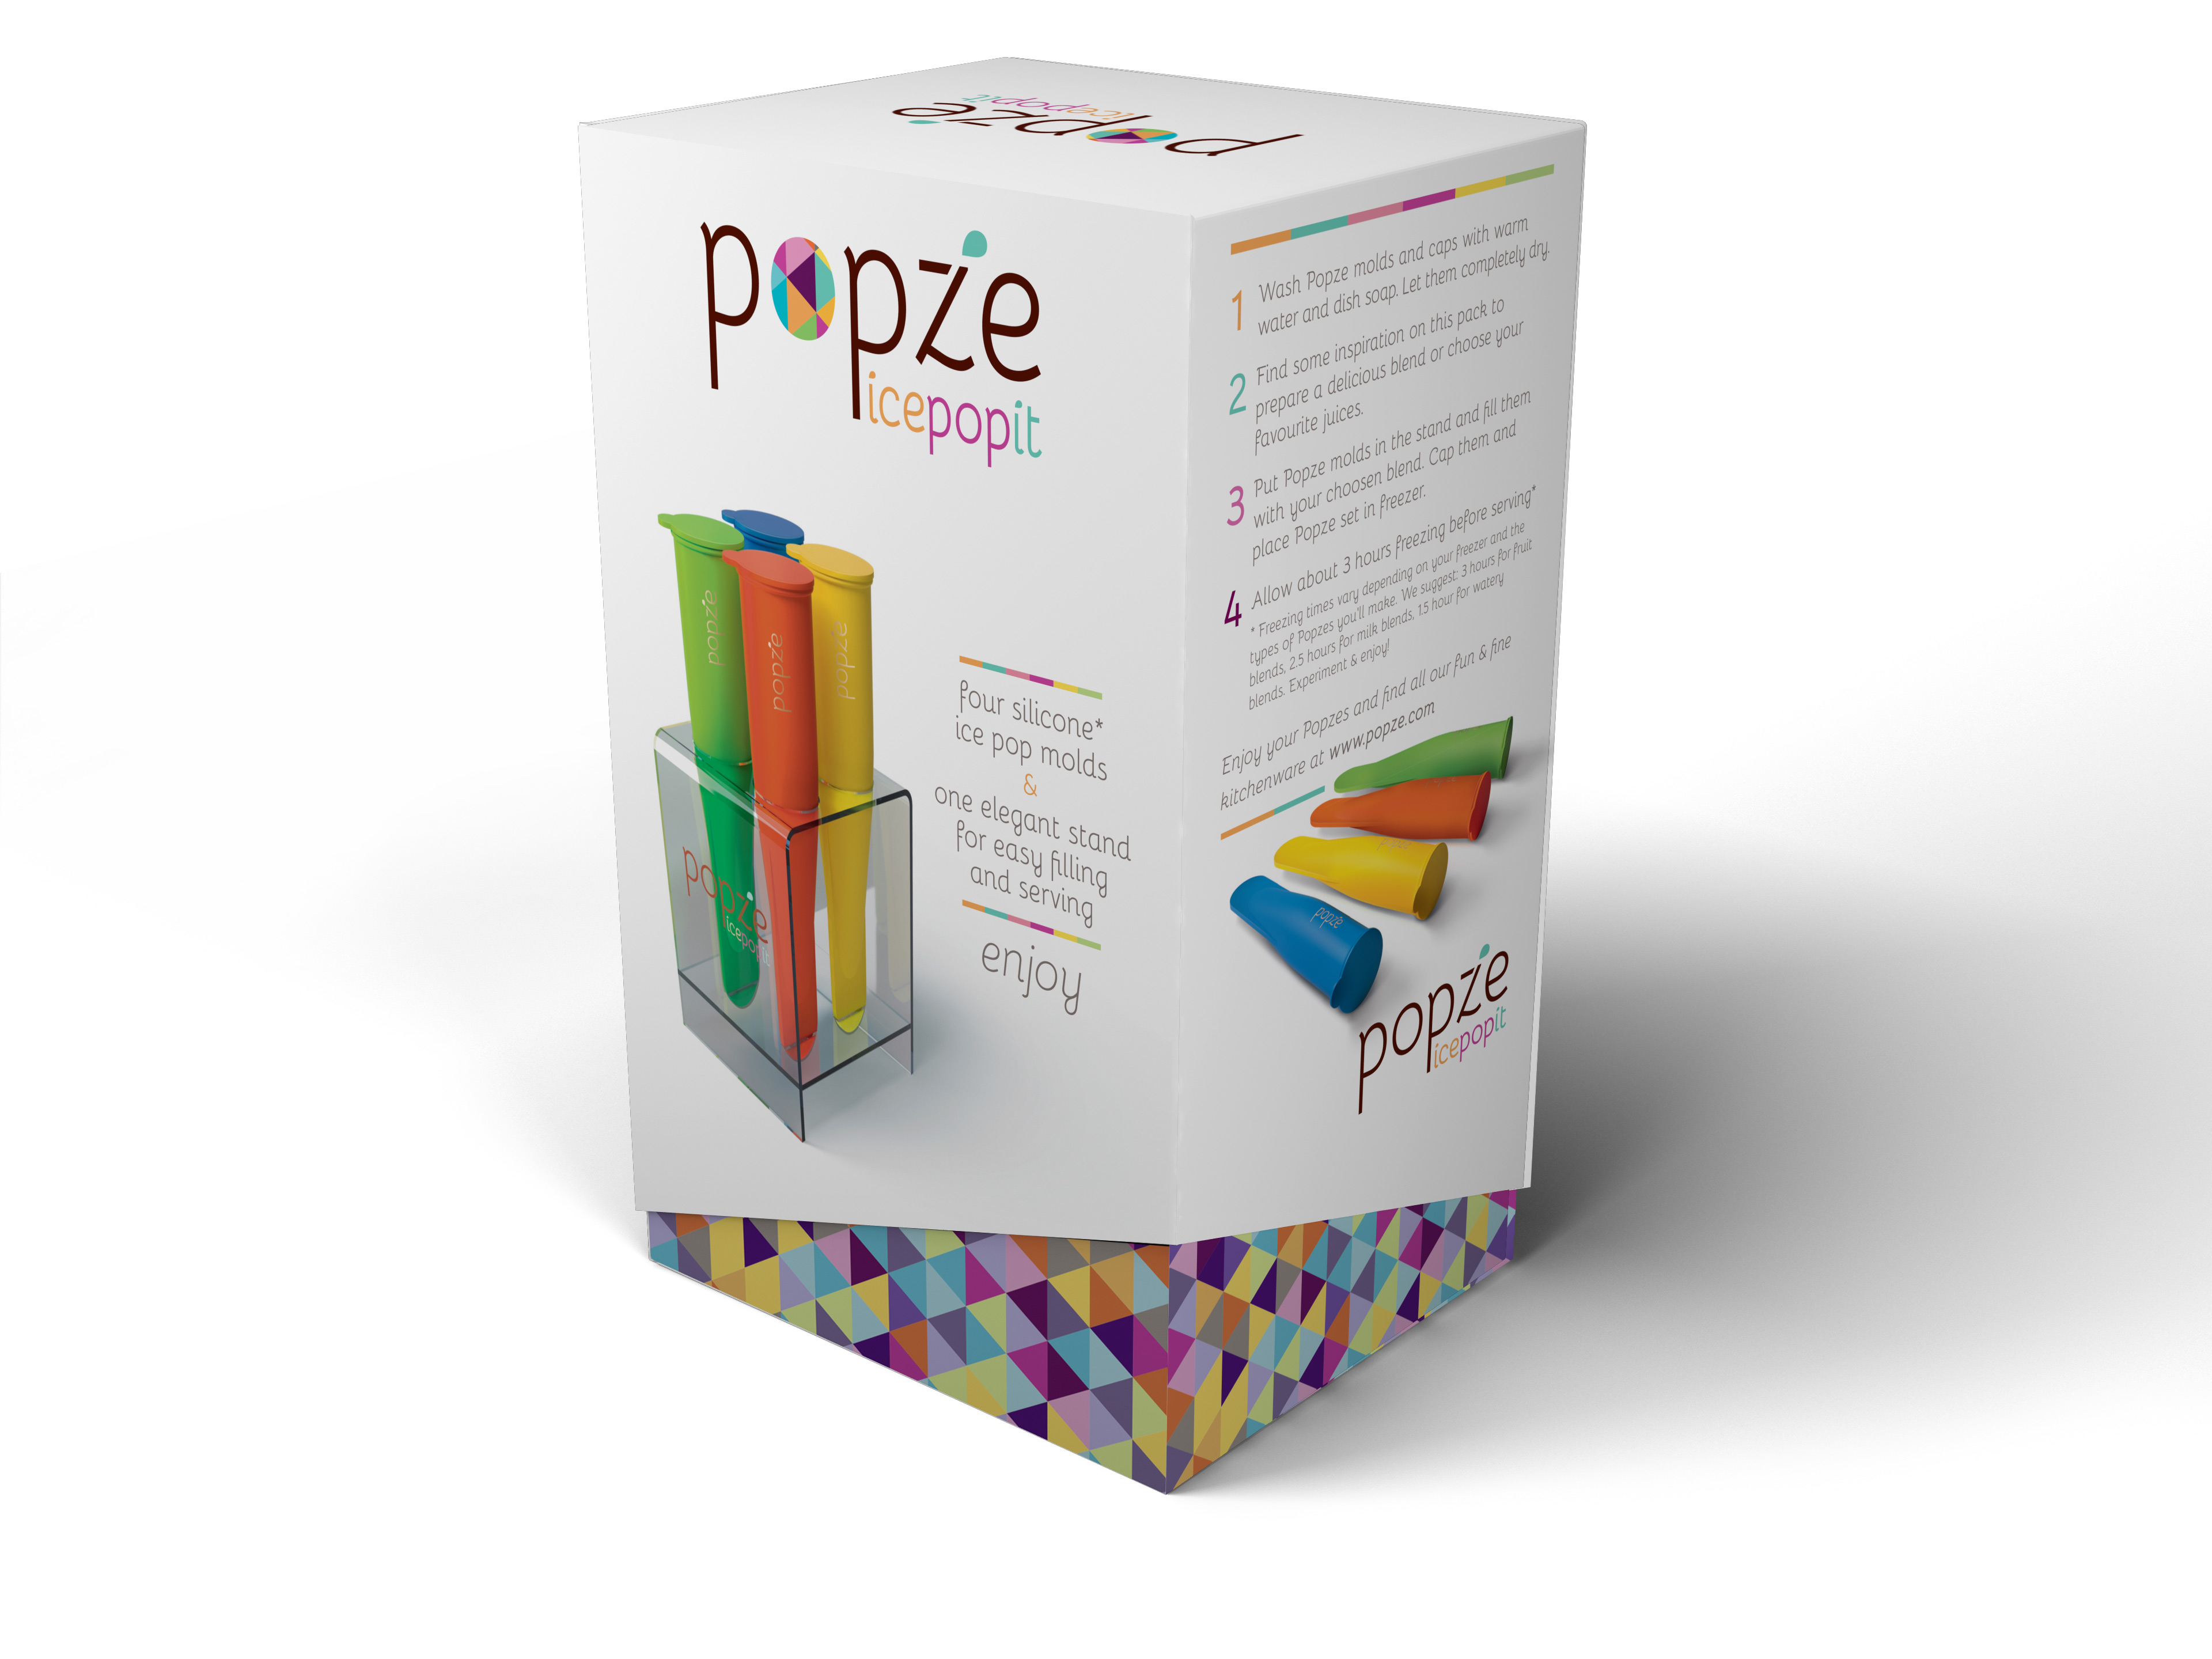 Popze beautiful packaging